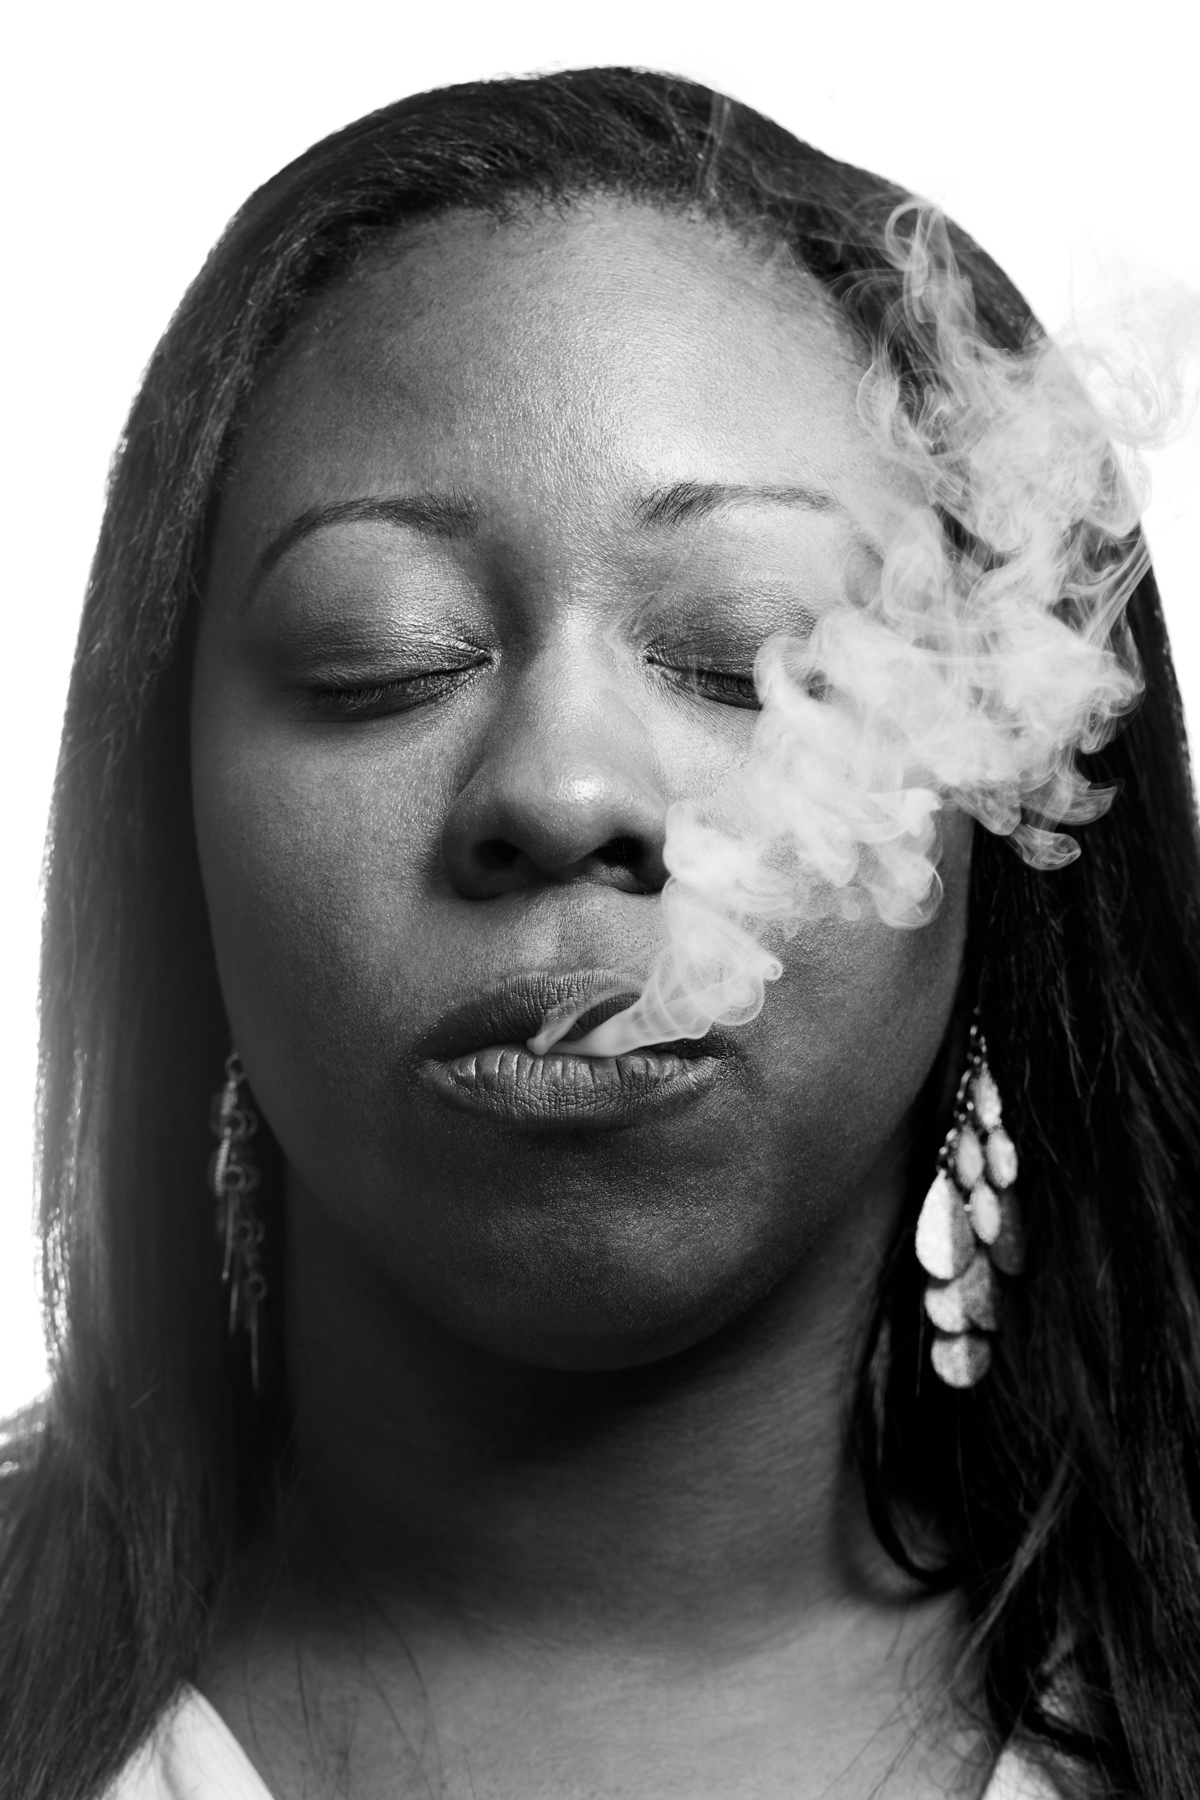 woman_vaping_nytimes_sethlowe